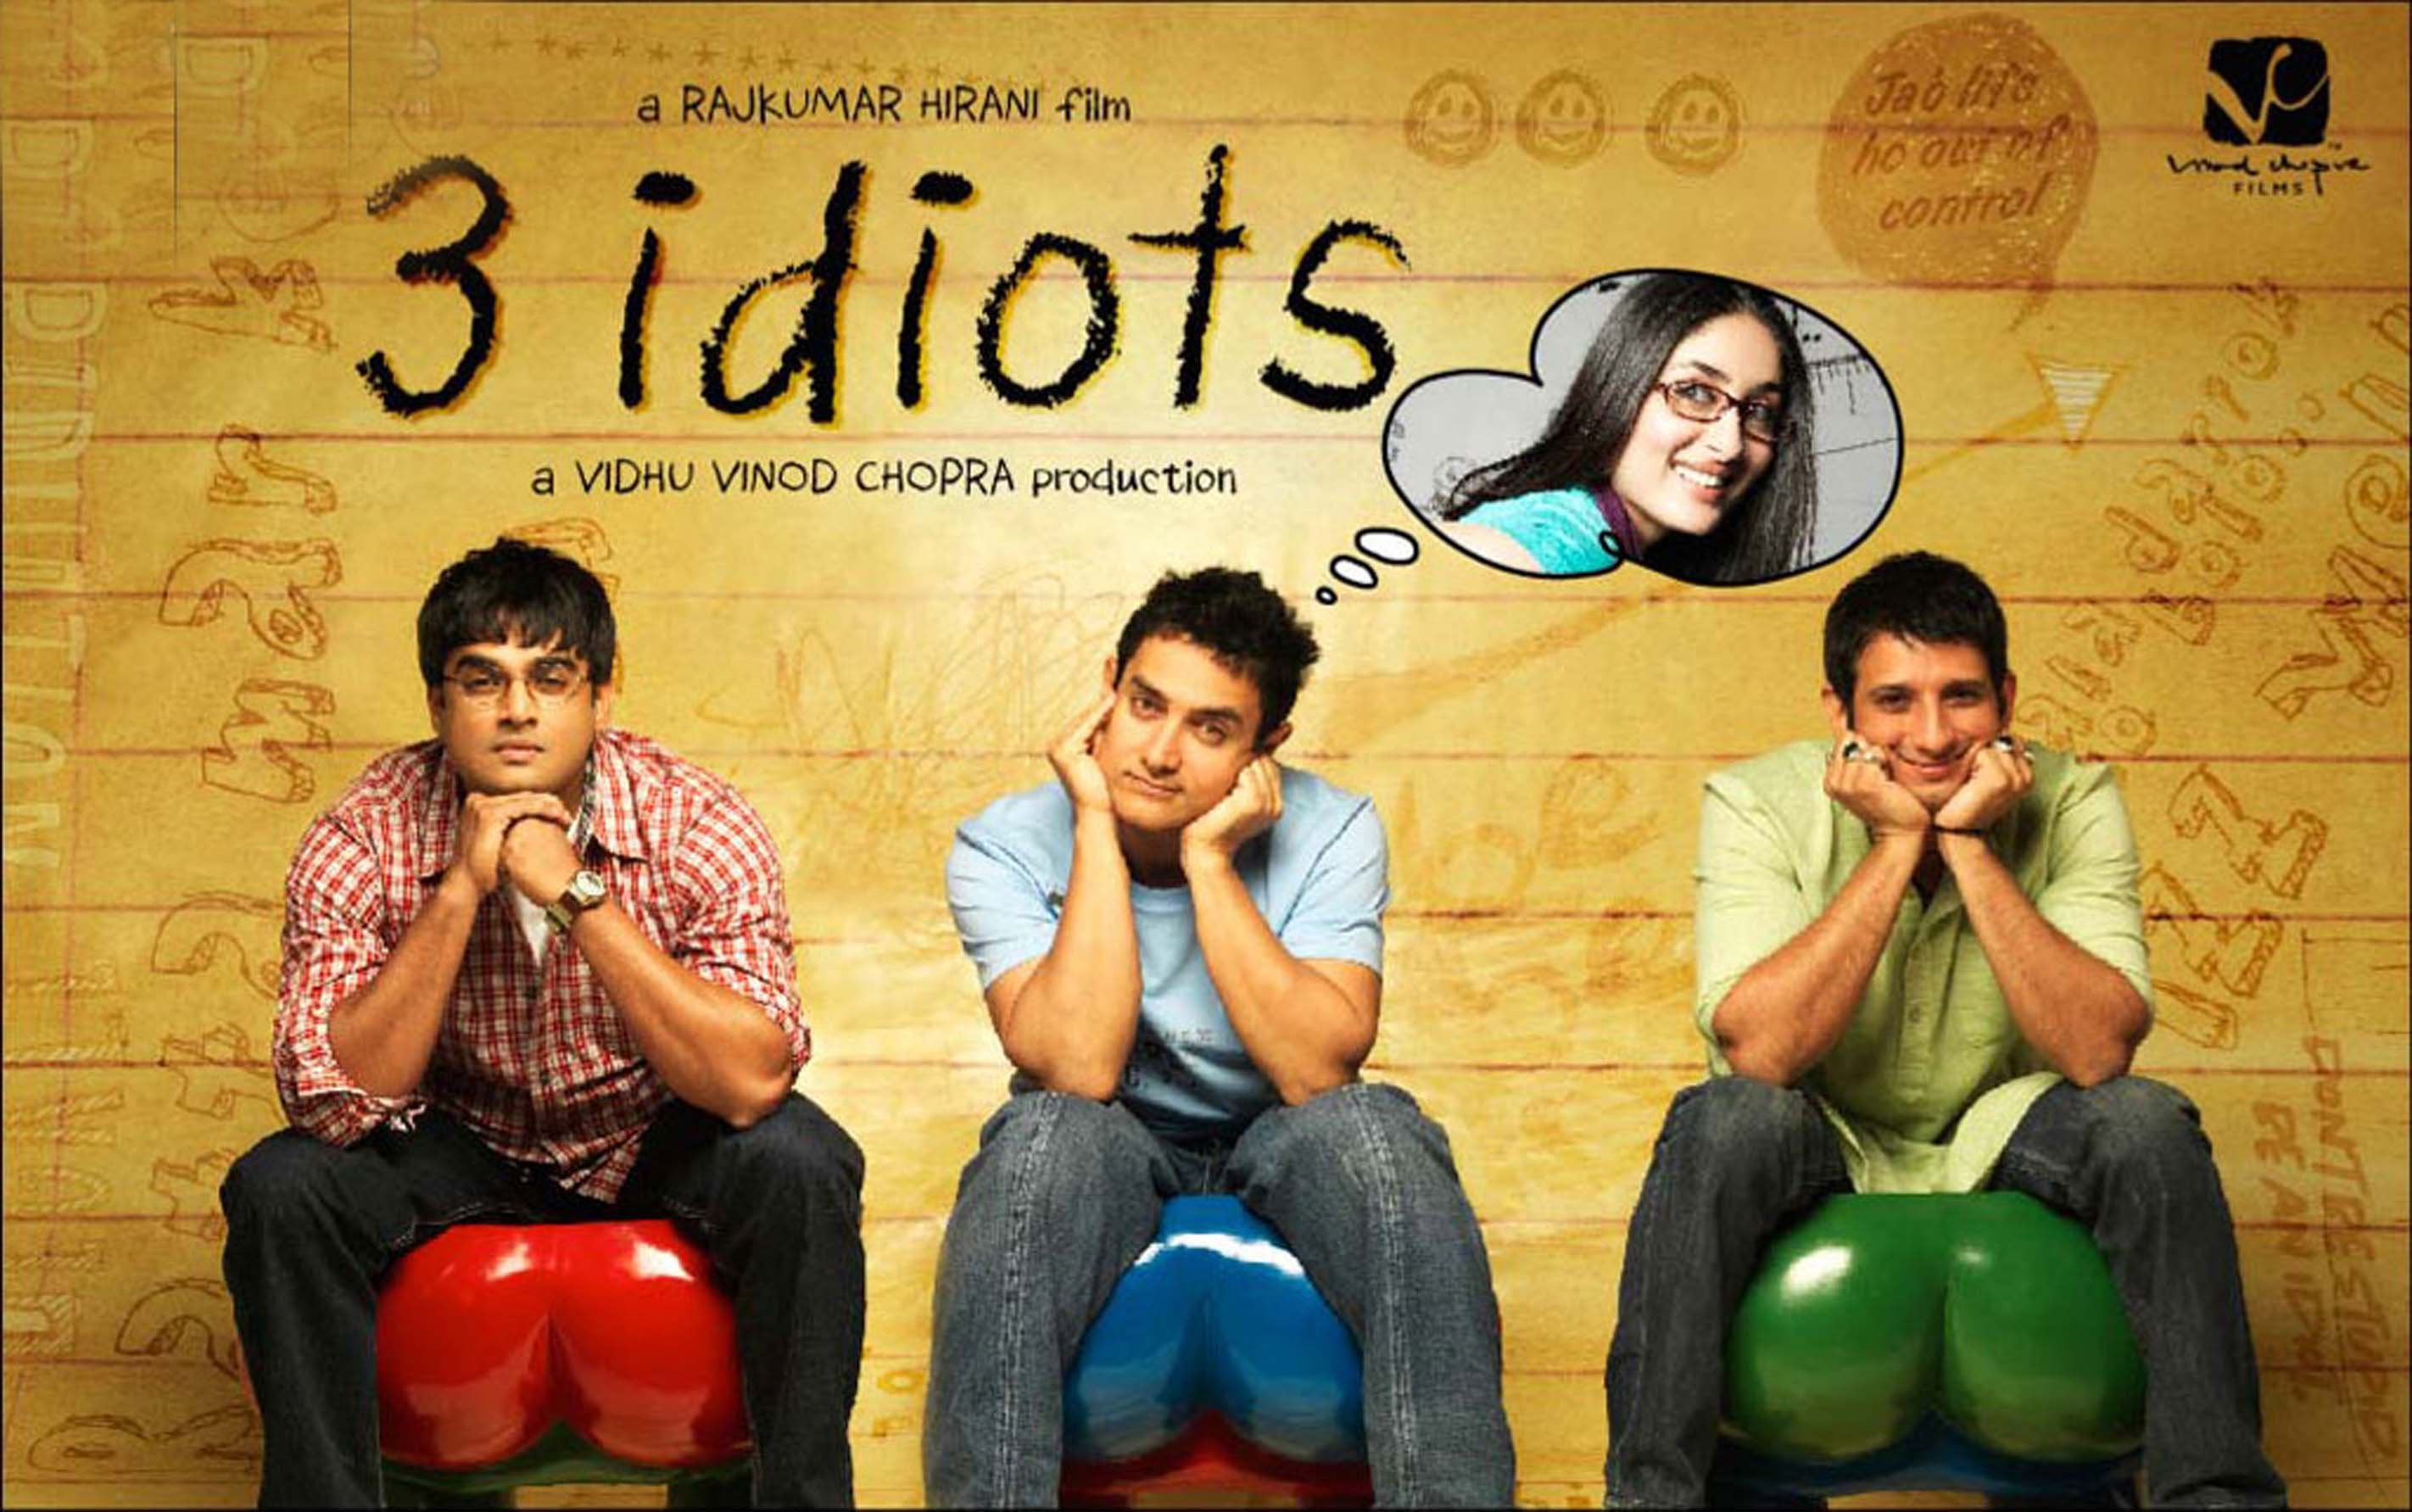 All Comedy Movies In 2009 10 indian movies that were featured among the world's